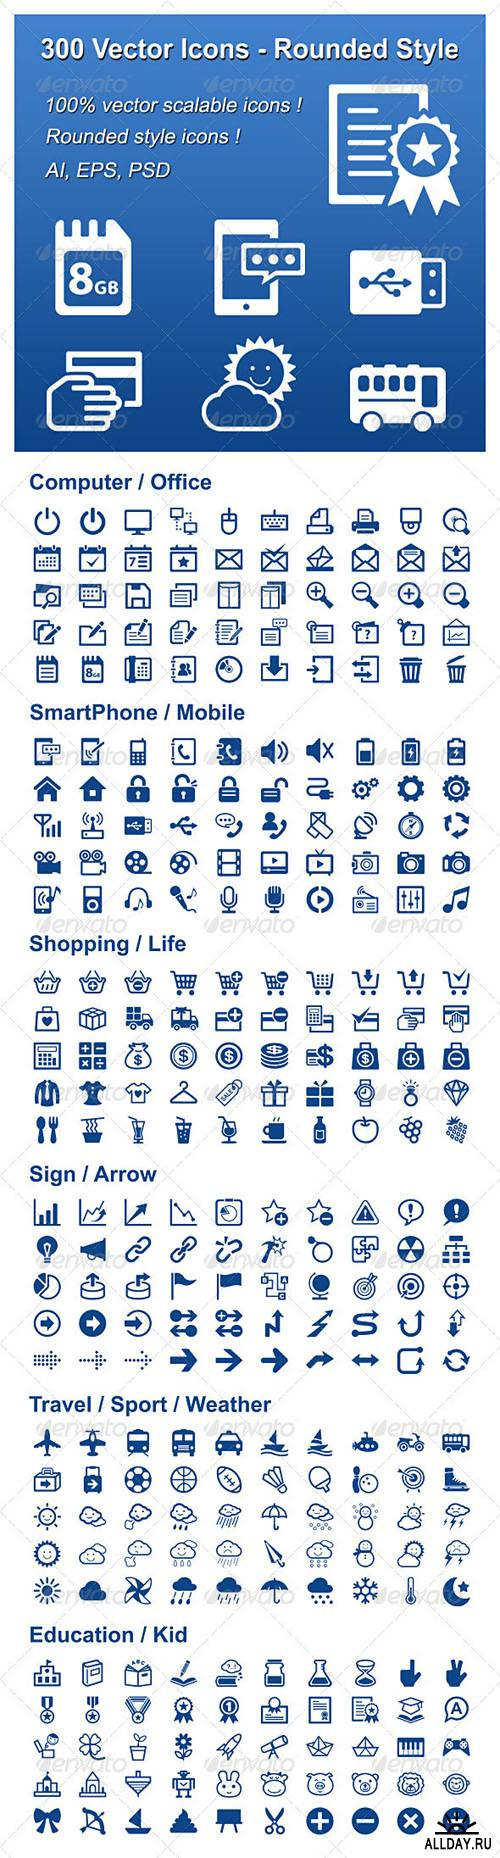 300 Vector Icons - Rounded Style